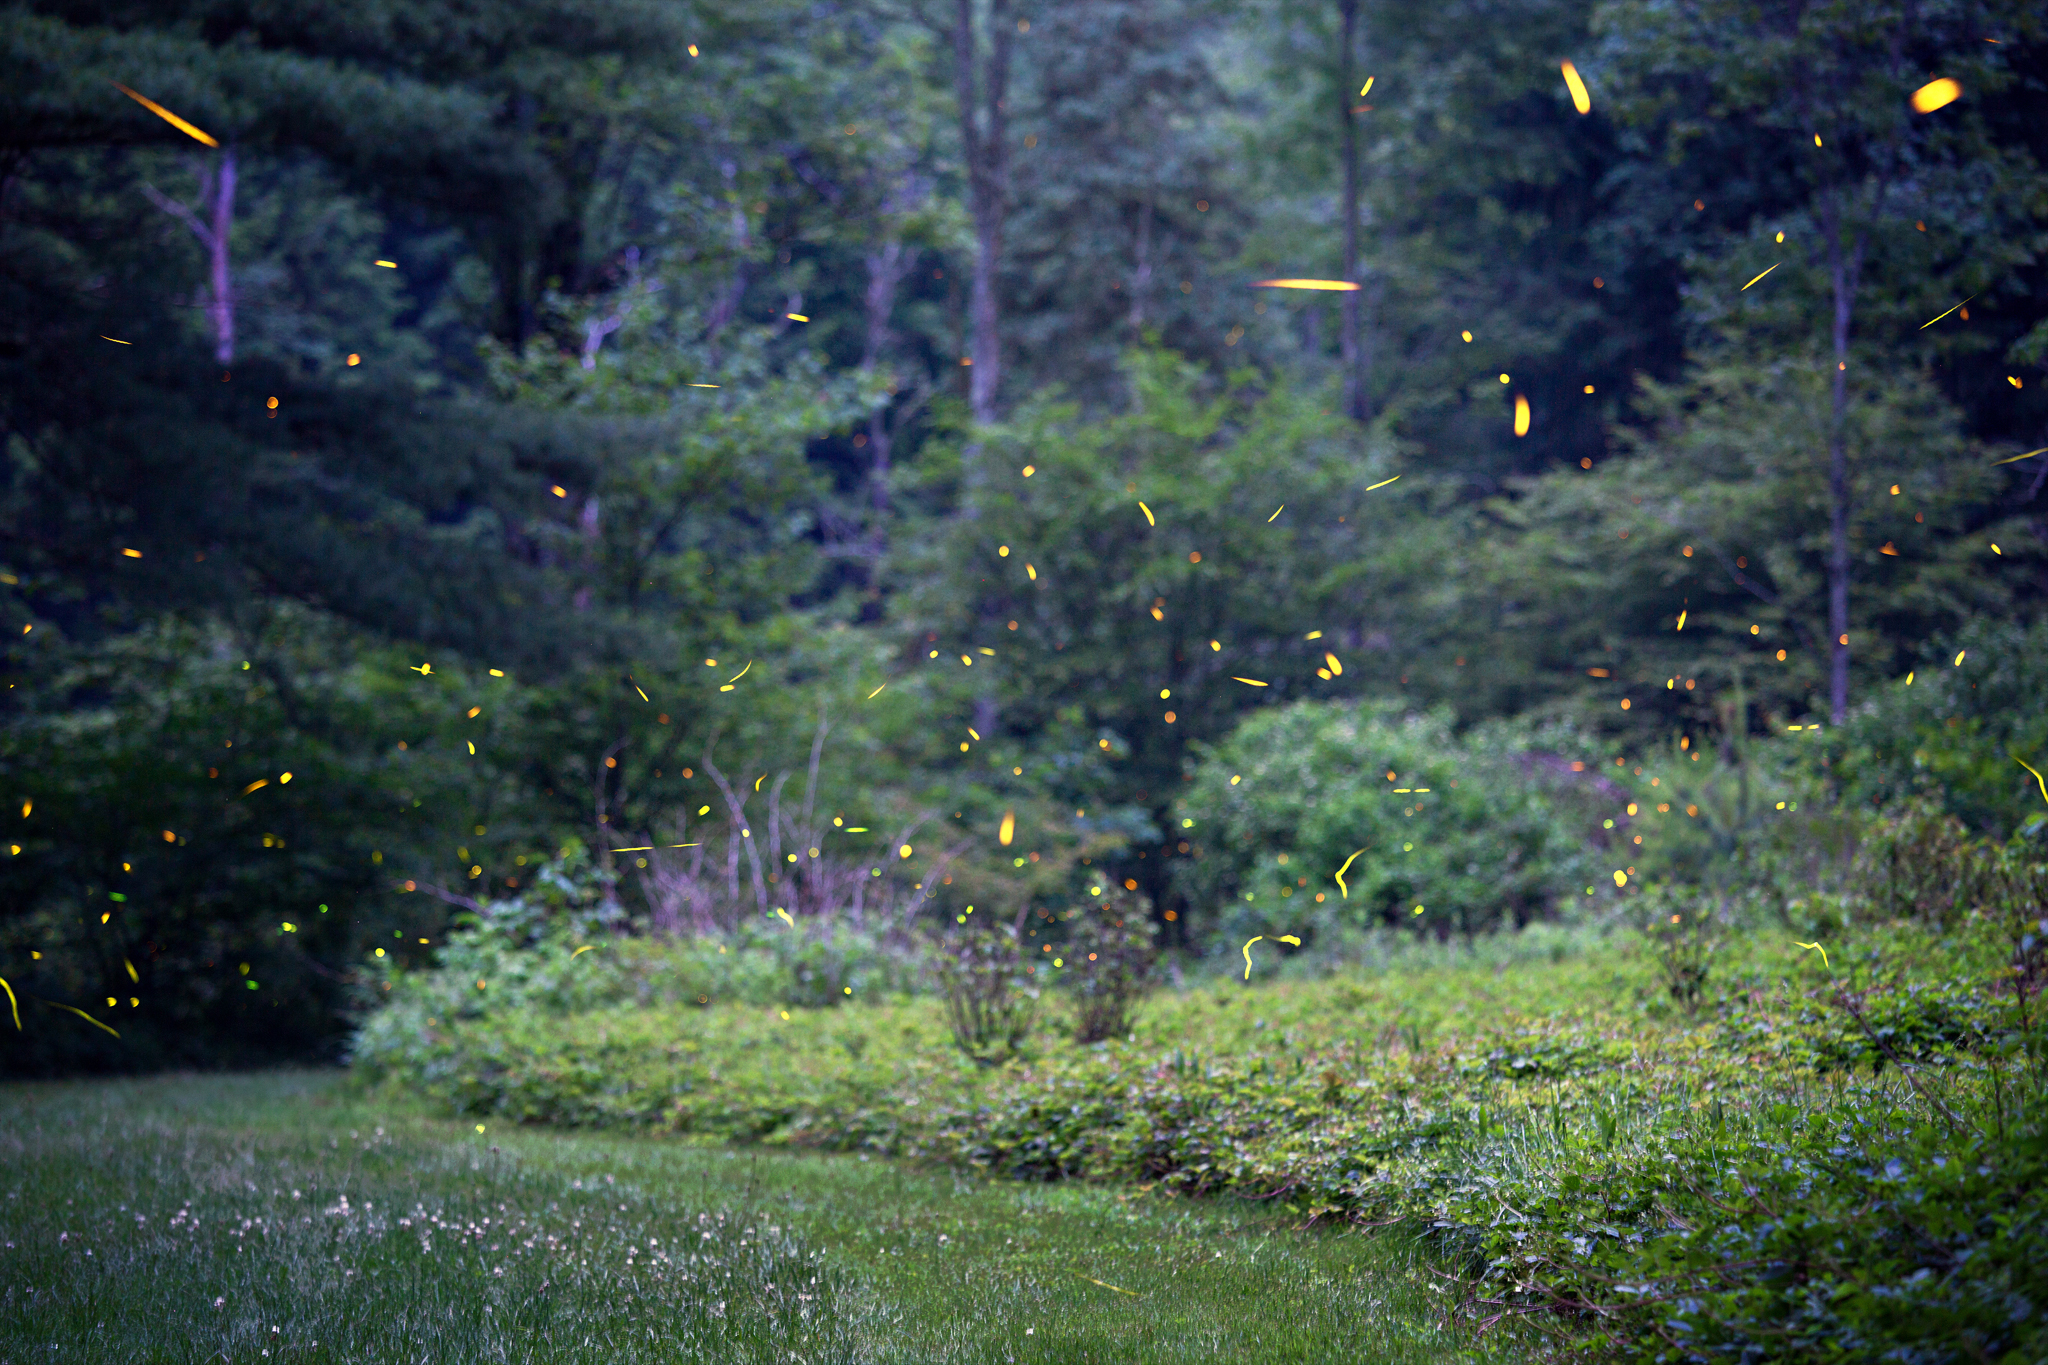 Western Pennsylvania Fireflies